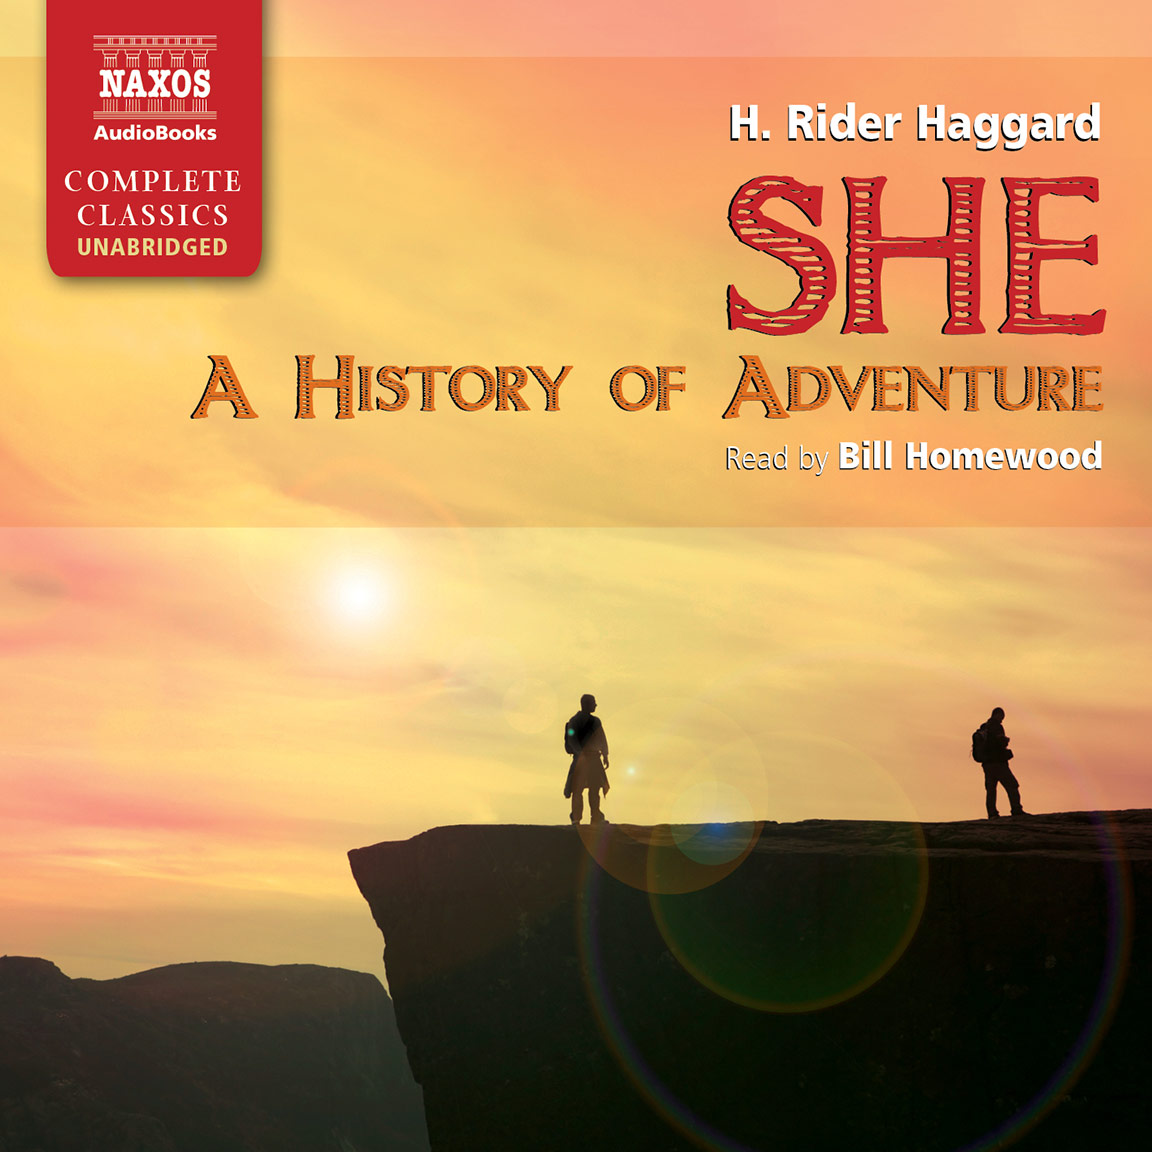 She – A History of Adventure (unabridged)